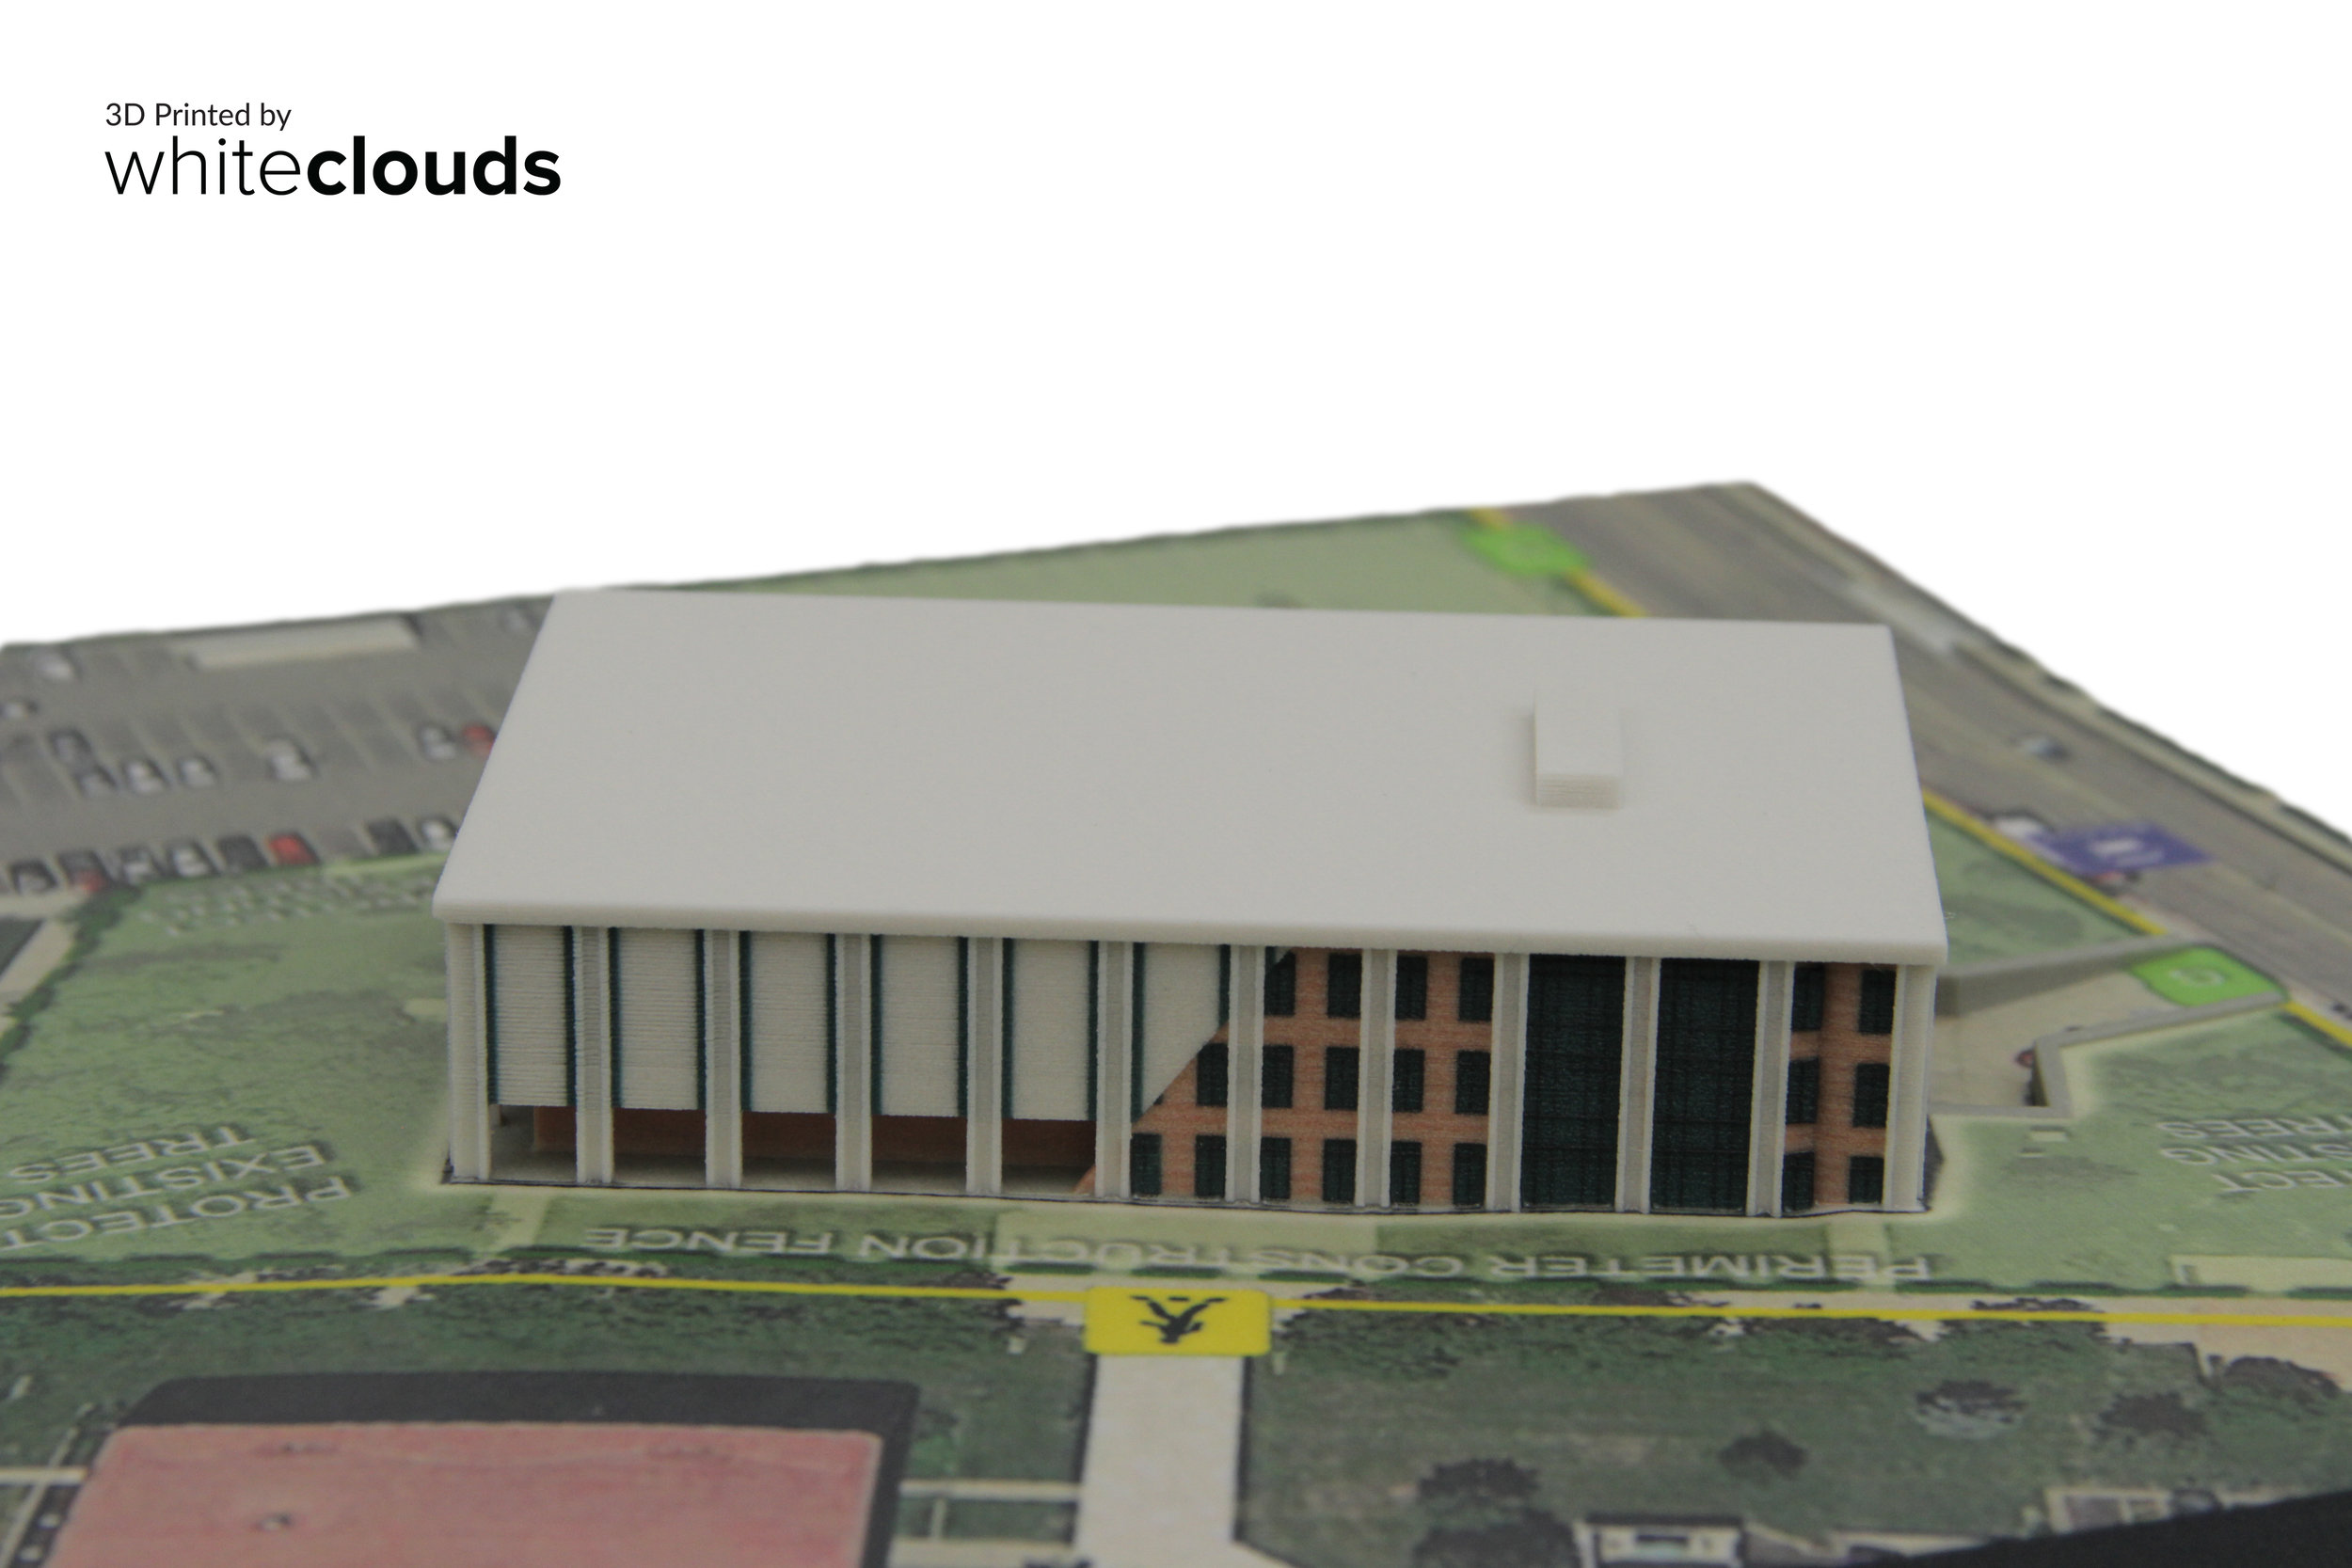 3D-Printed-WhiteCloud-Weber-State-Architecture-Big-D-Weber-State-Edited-Photos-1.JPG